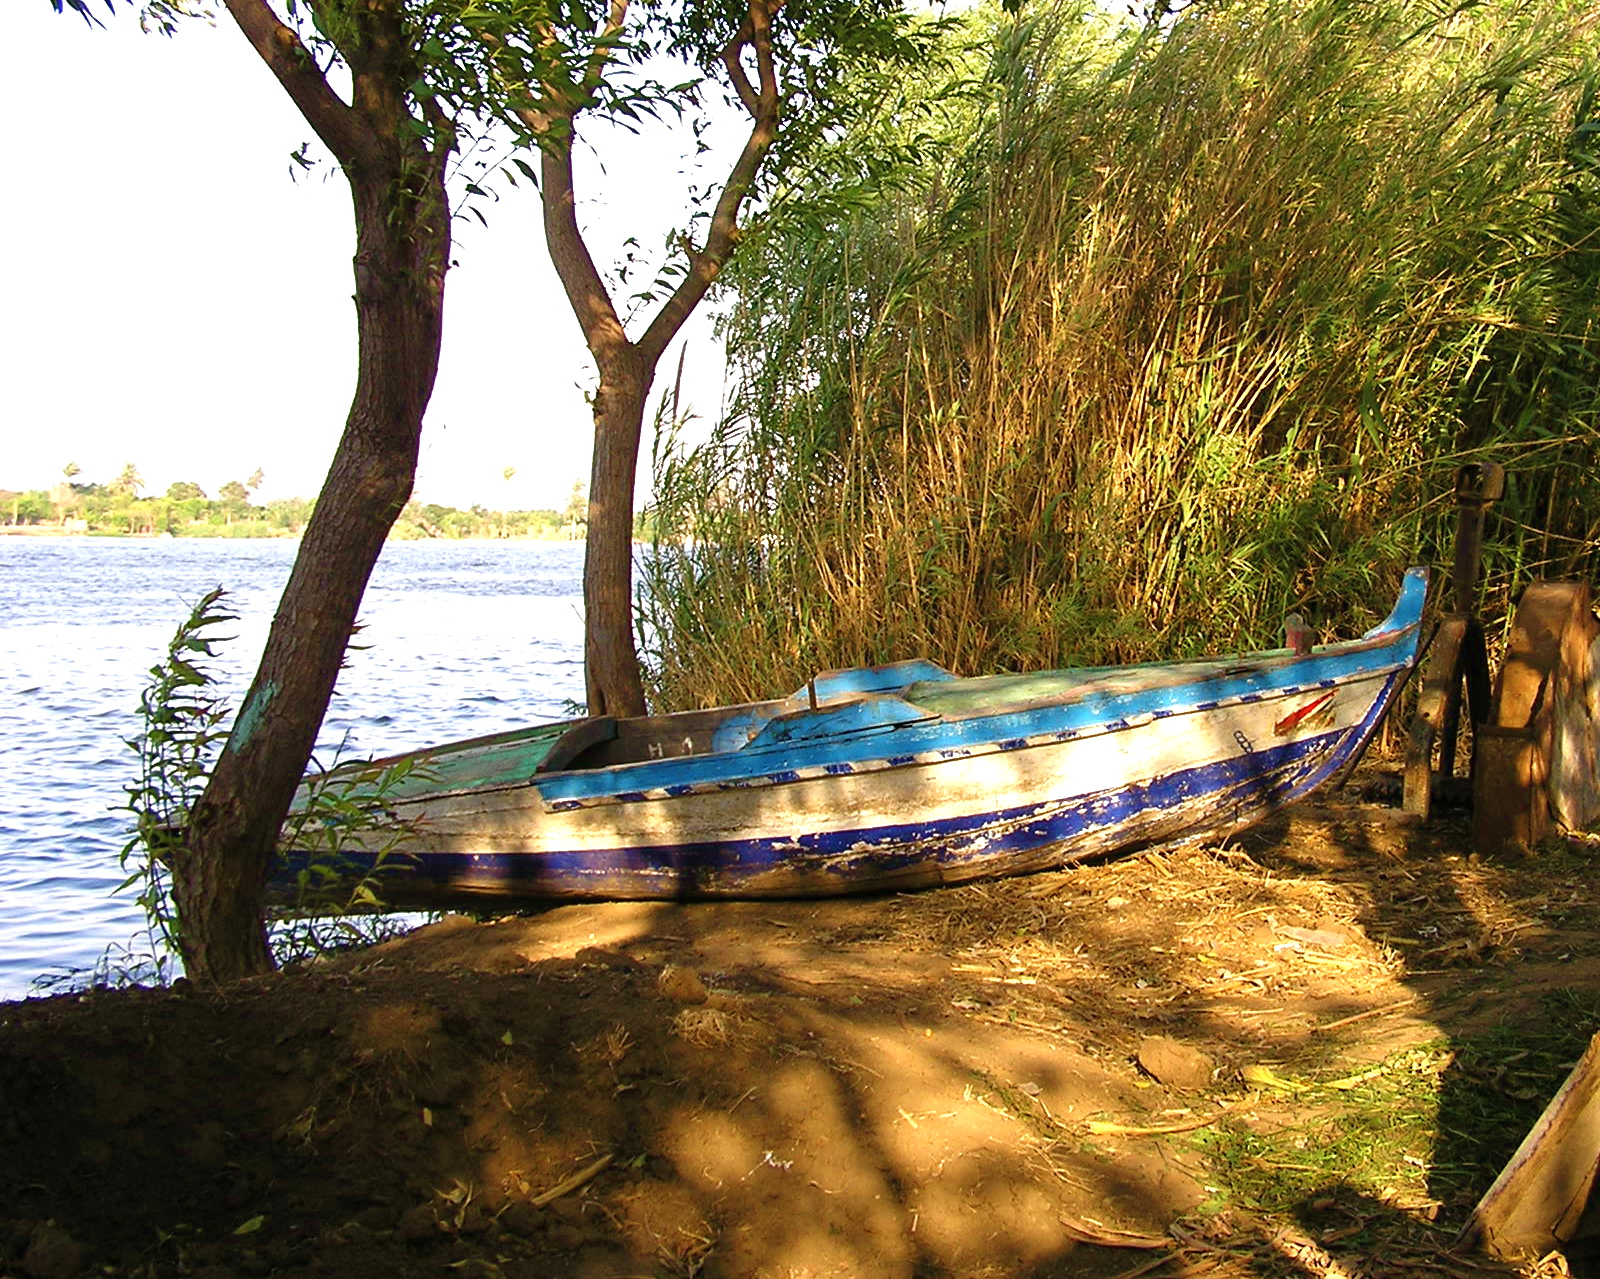 Boat of the bank of Nile River